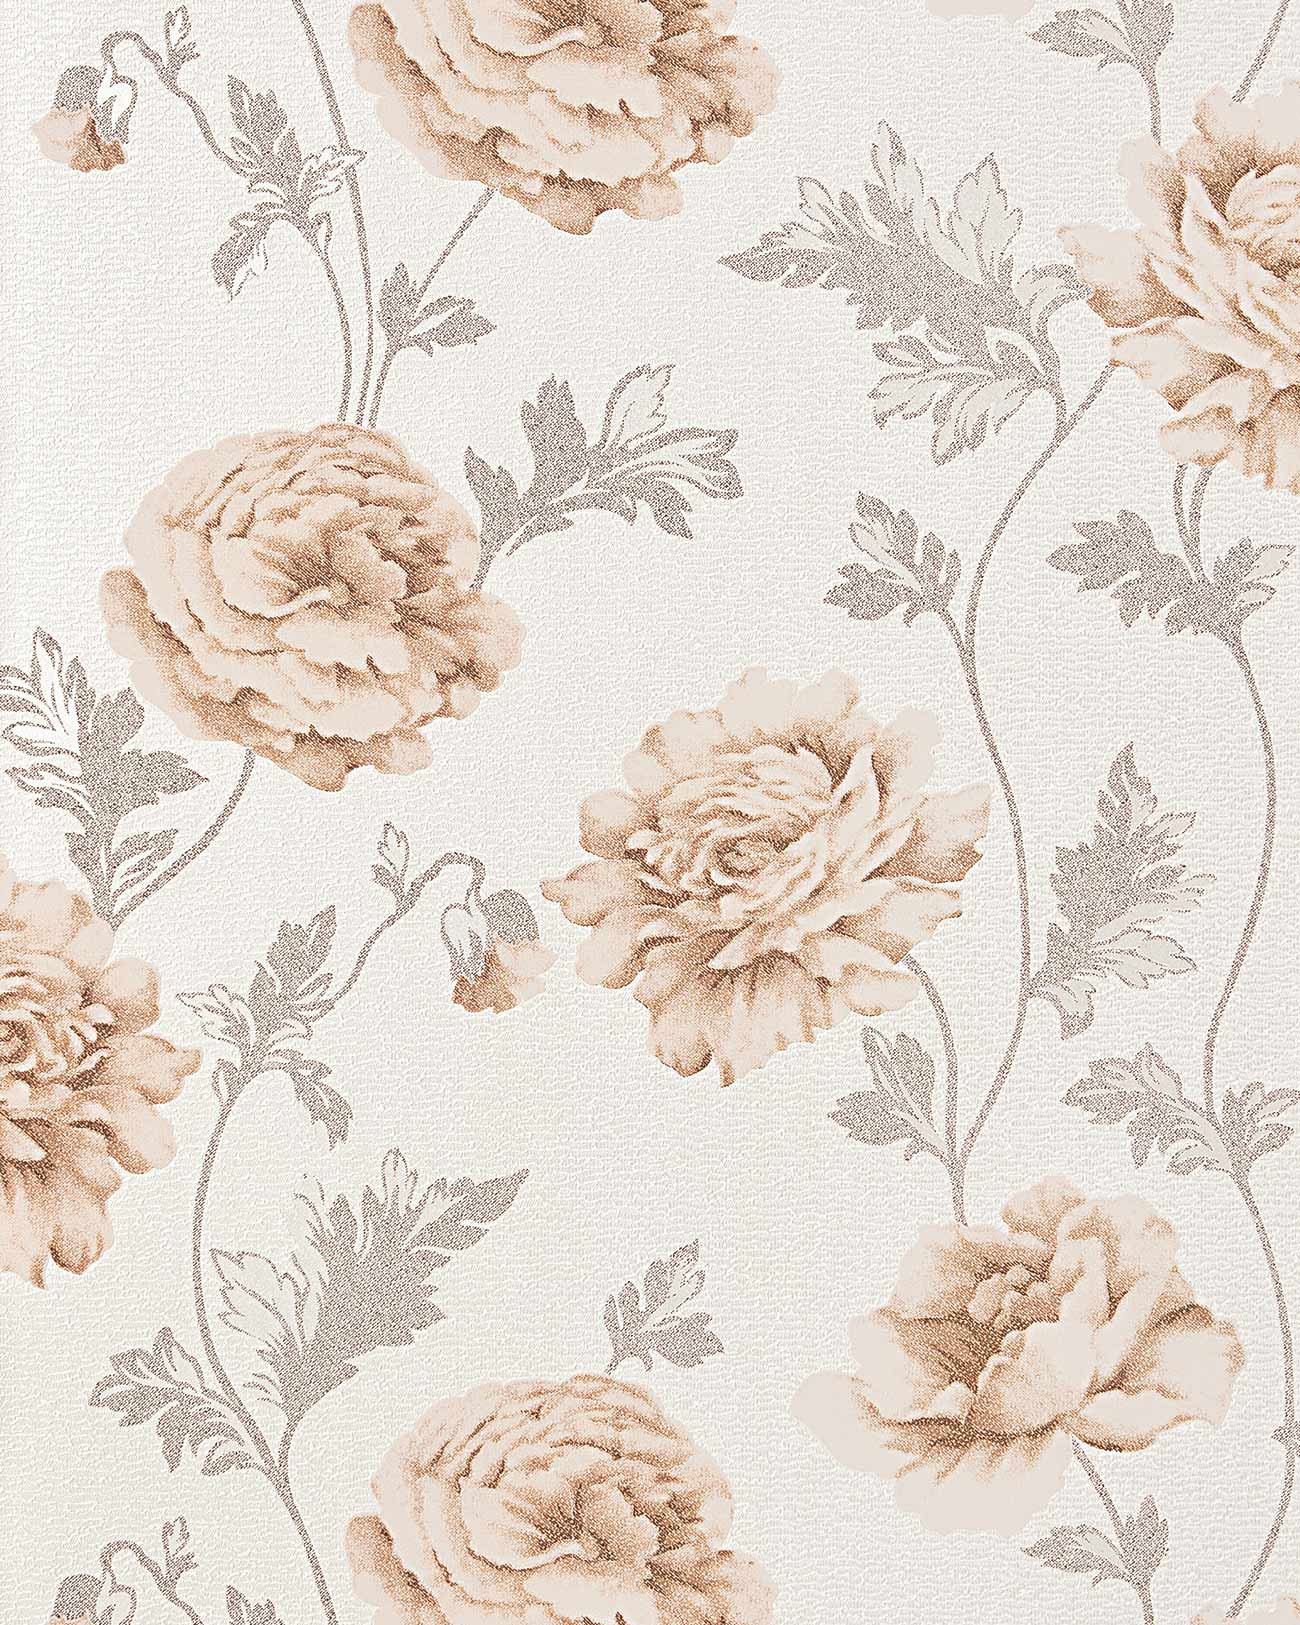 Edem 086 23 Romantic Wallpaper Floral Design Roses Texture